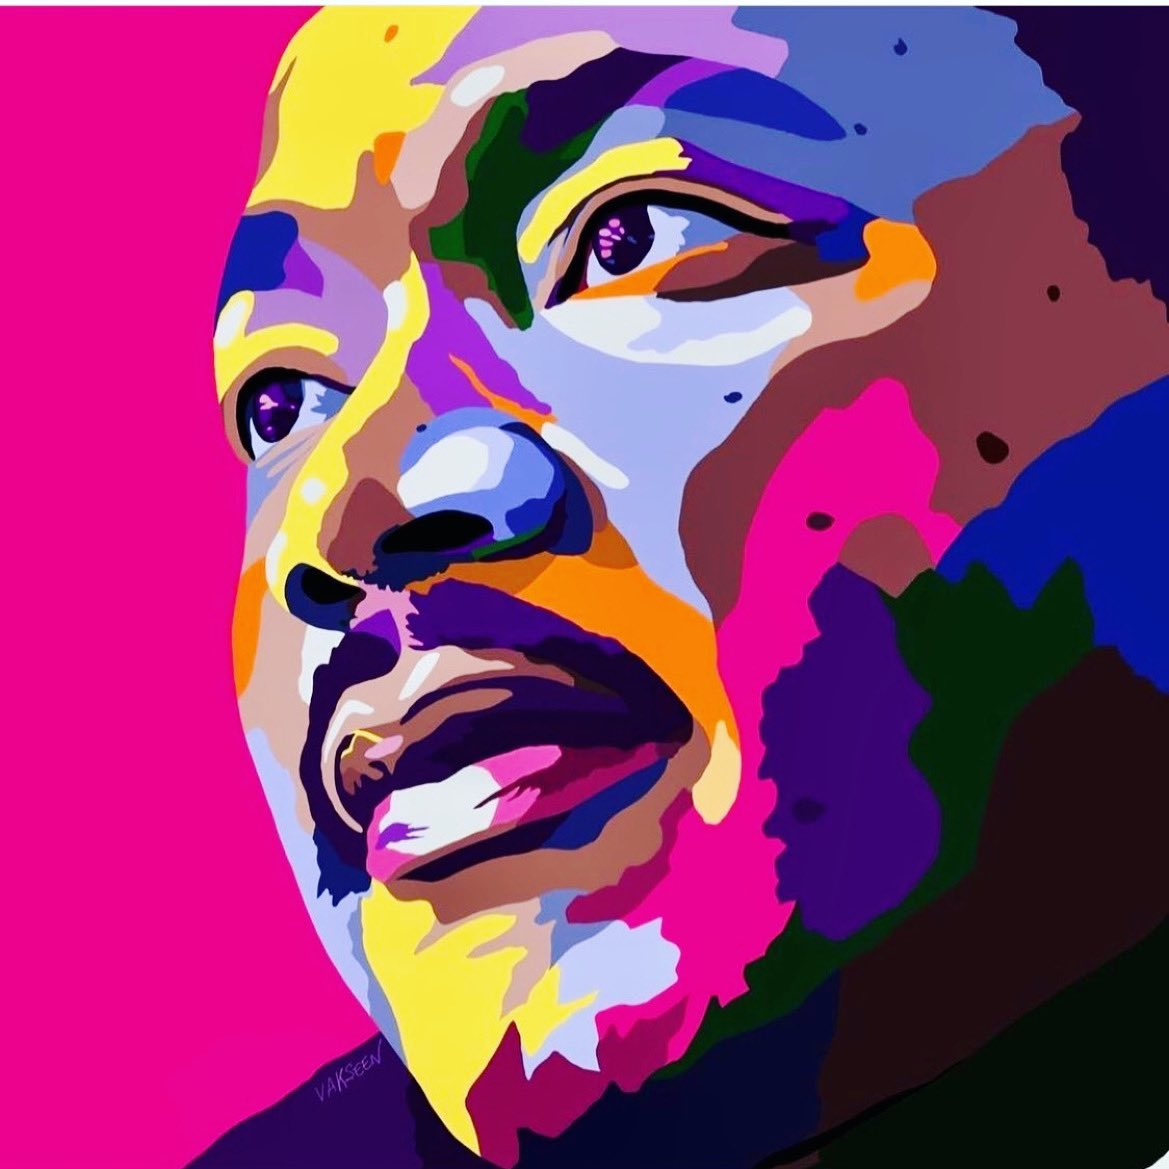 What are you doing to make the world a better place? How are you positively impacting your community and the people you love? How will your name be remembered? ✊🏿✊🏾✊🏽✊🏼#mlk #martinlutherking #mondaymotivation #mondayinspiration 👉🏽ART by @vakseen